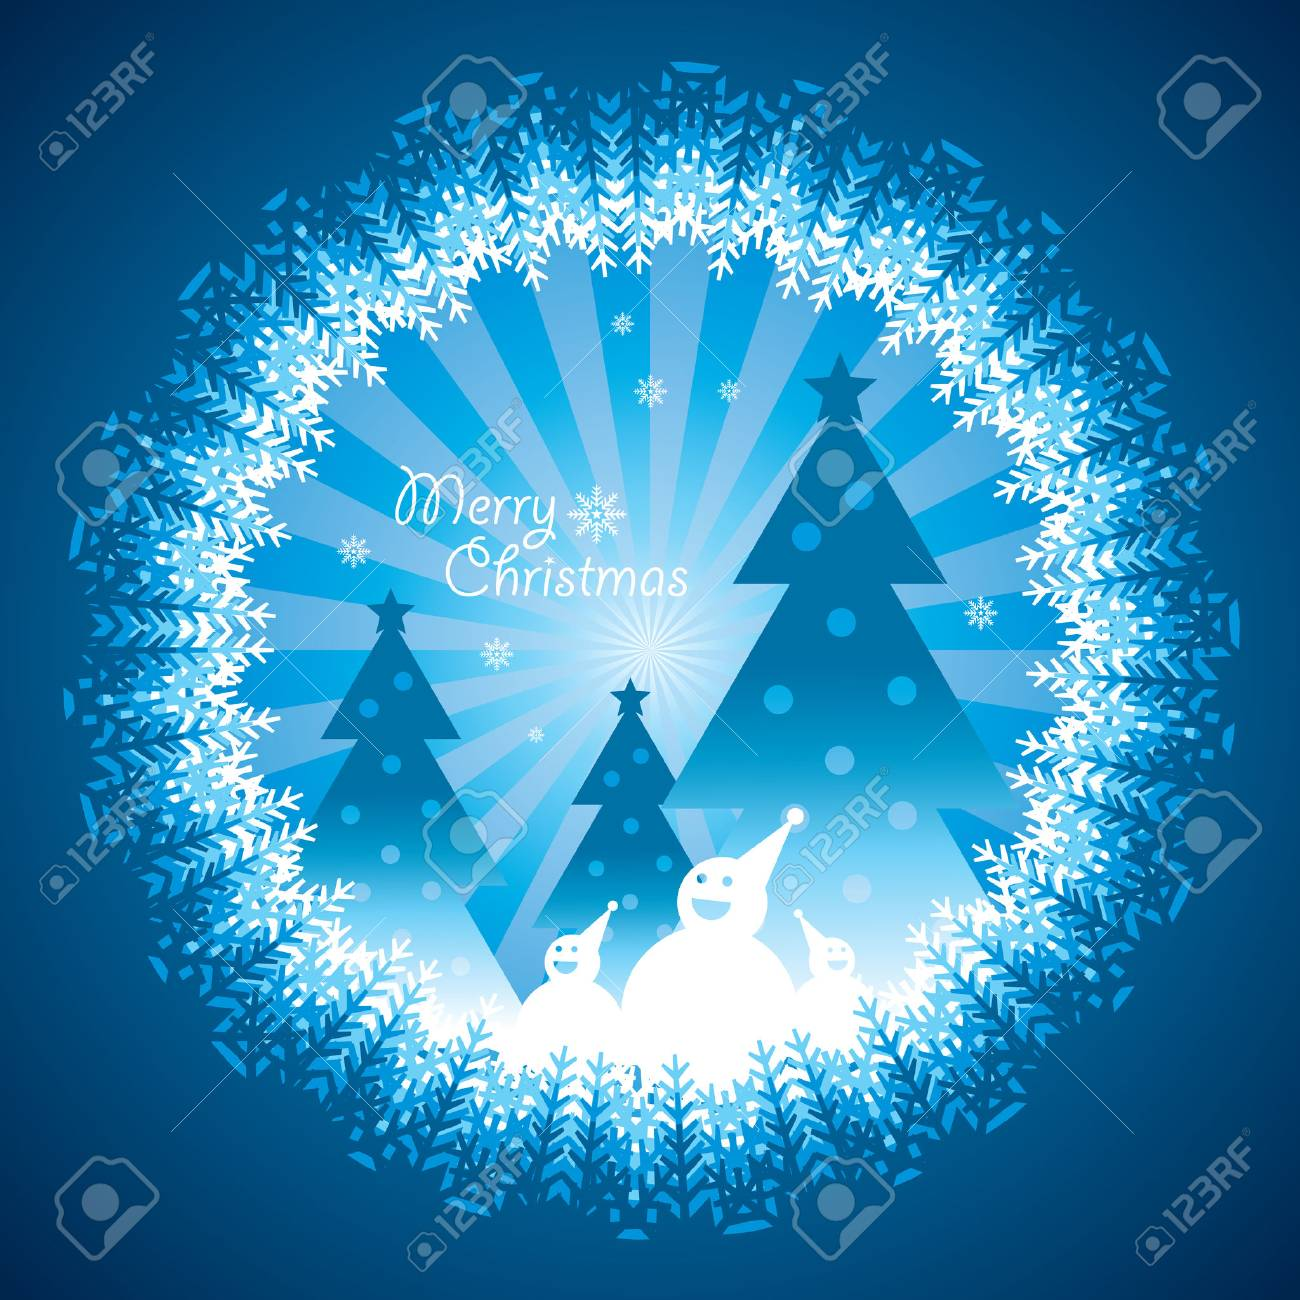 Merry Christmas! Stock Vector - 3843072